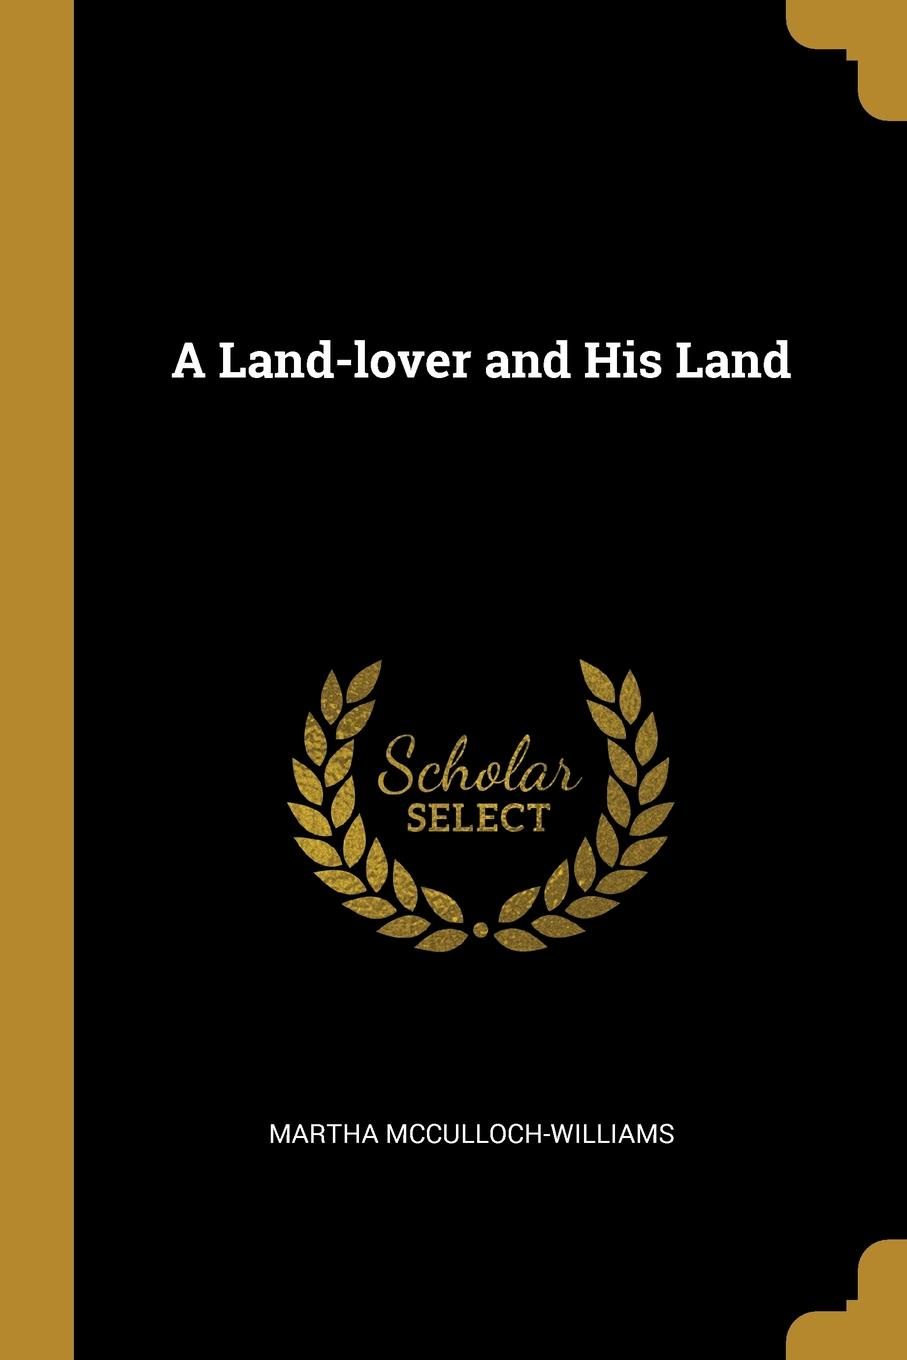 A Land-lover and His Land